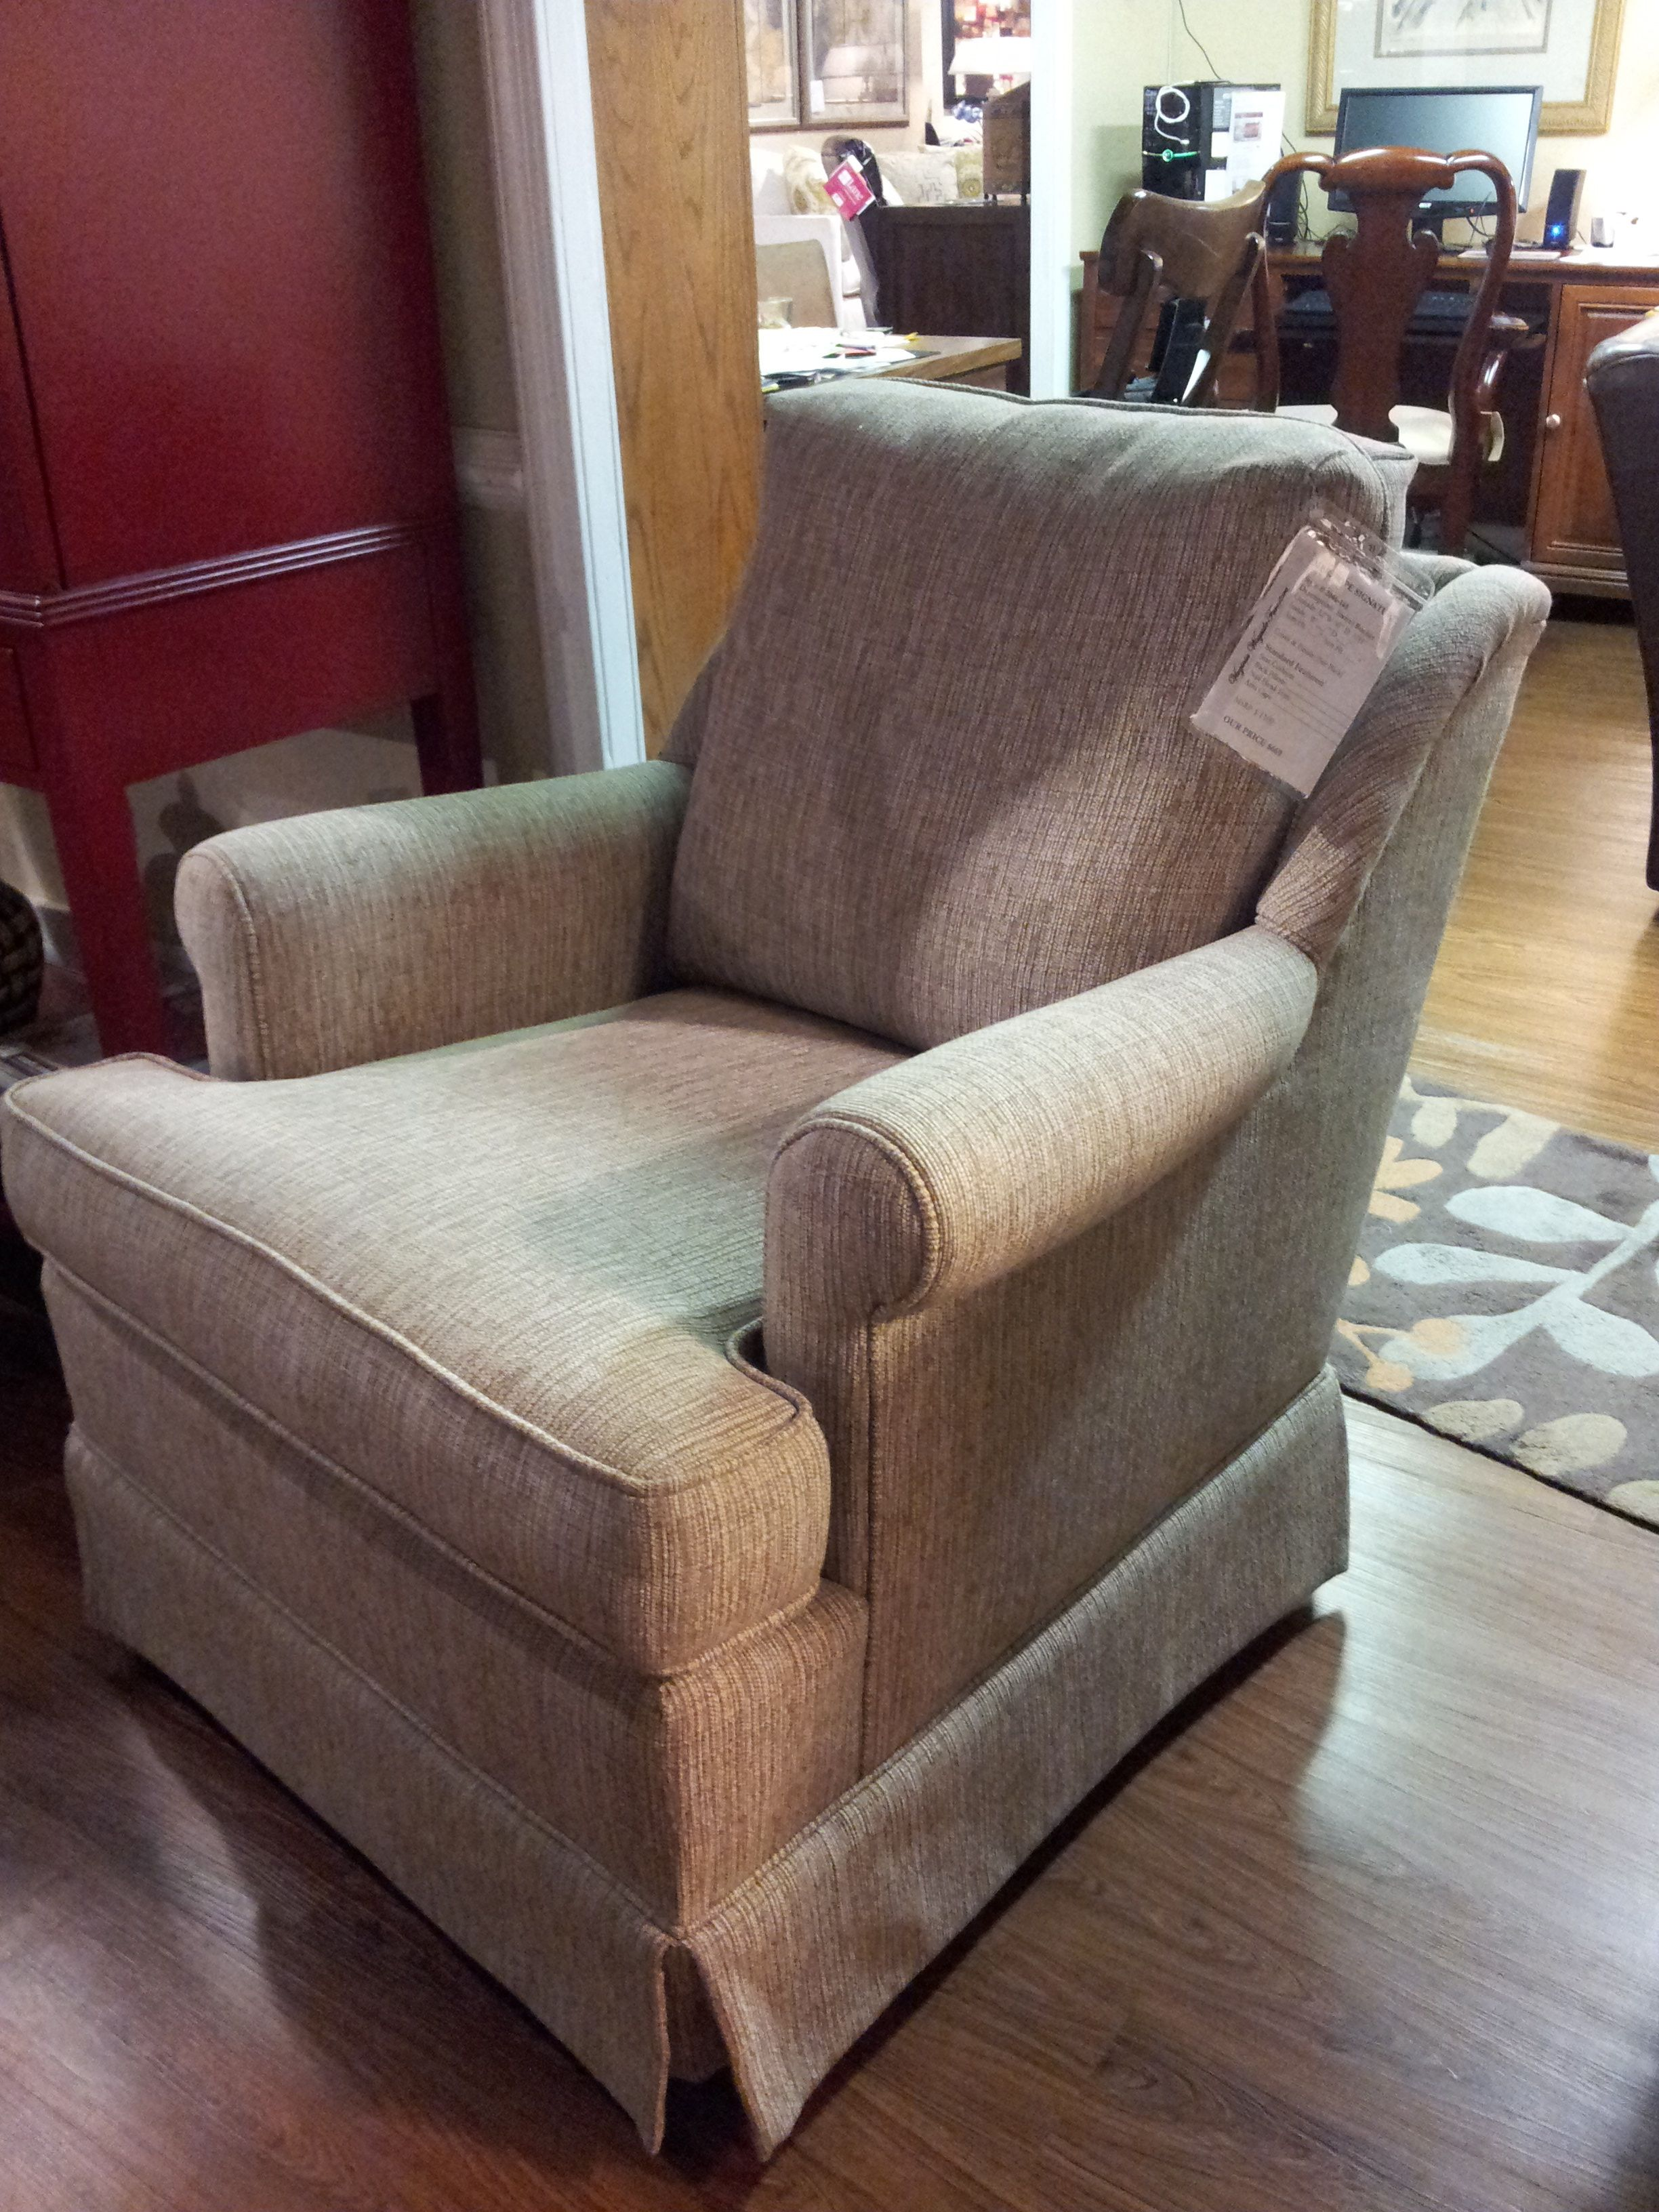 Elegant VA Wayside Furniture; Swivel Rocker Chair With Your Choice Of Fabric.  Popeu0027s Signature Gallery